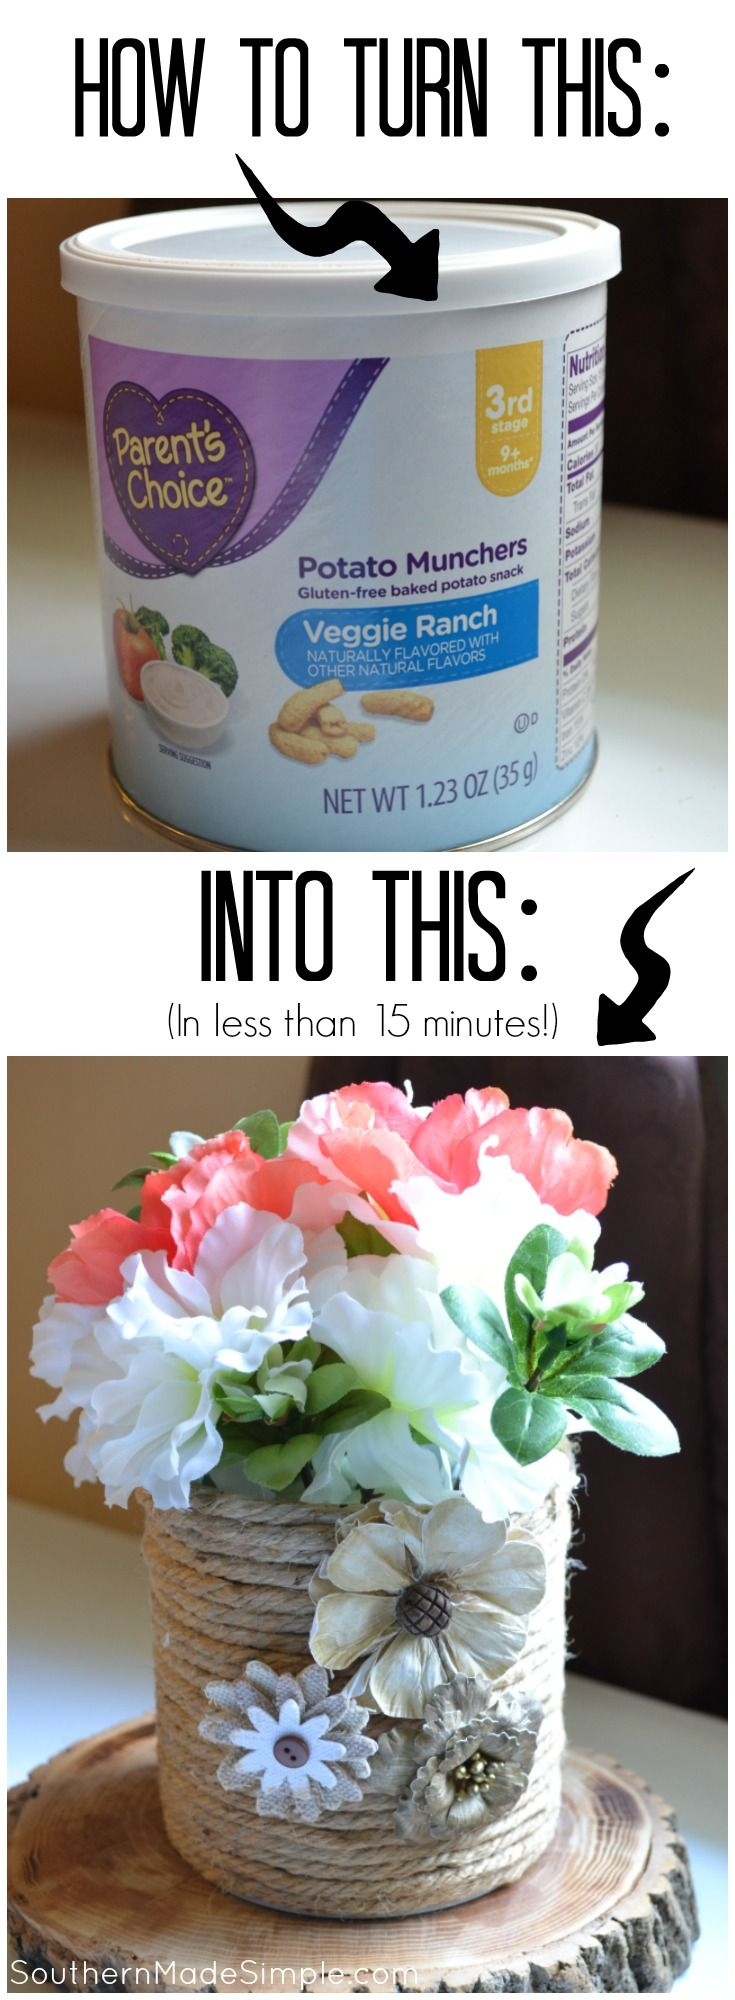 100 ways to recycle - How To Repurpose Old Formula And Snack Cans Ways To Recyclerepurposeupcycled